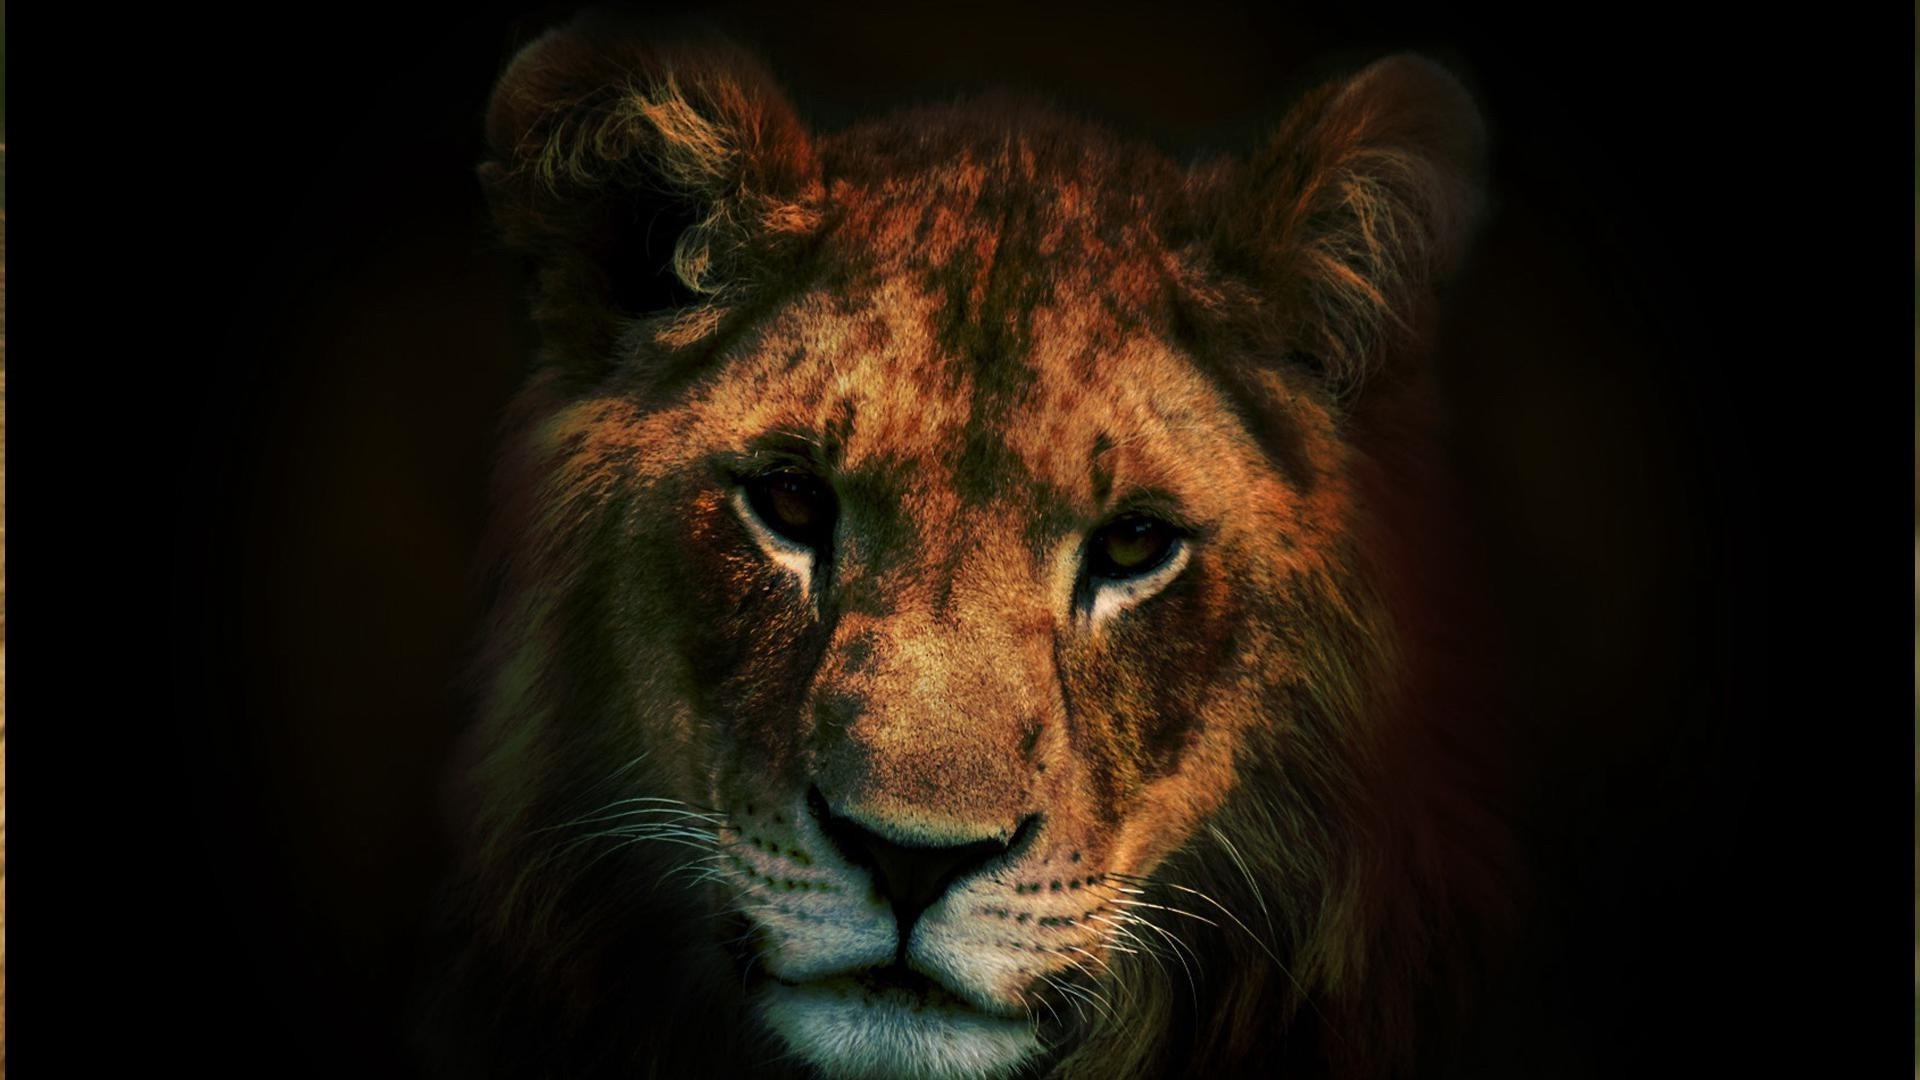 lions cat wildlife portrait mammal lion eye predator zoo animal hunter safari